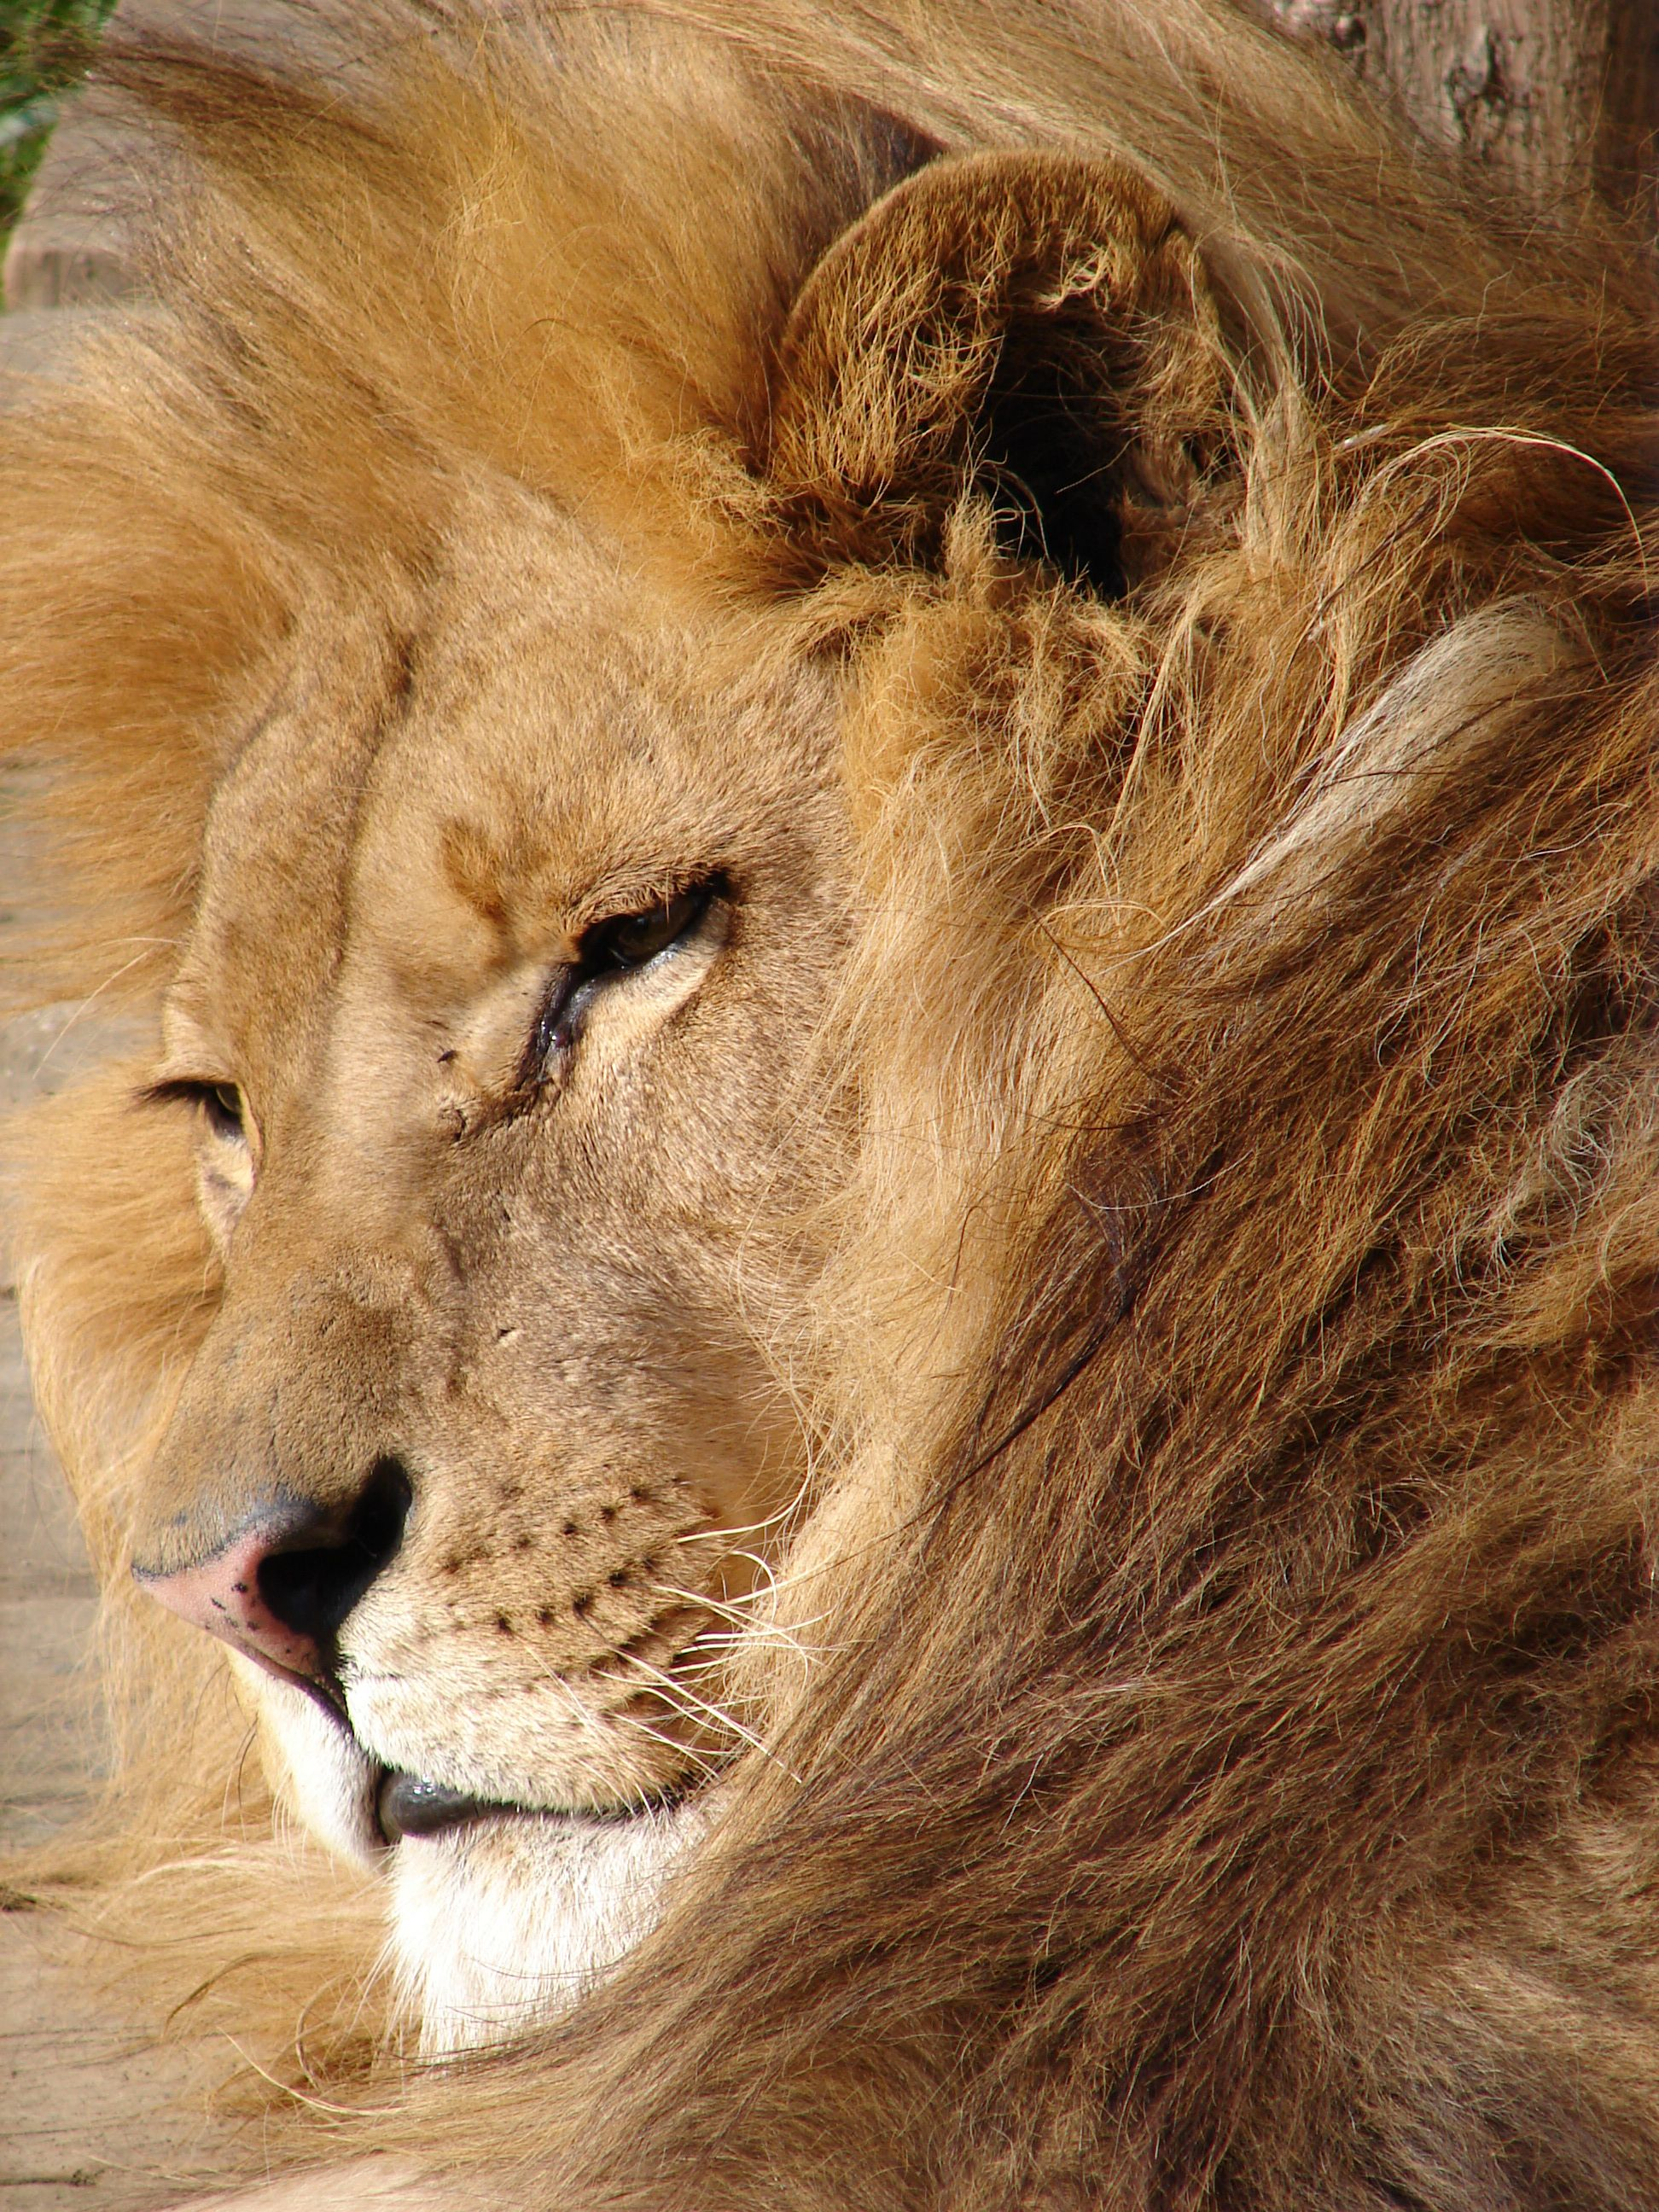 Description Lion 06584.jpg